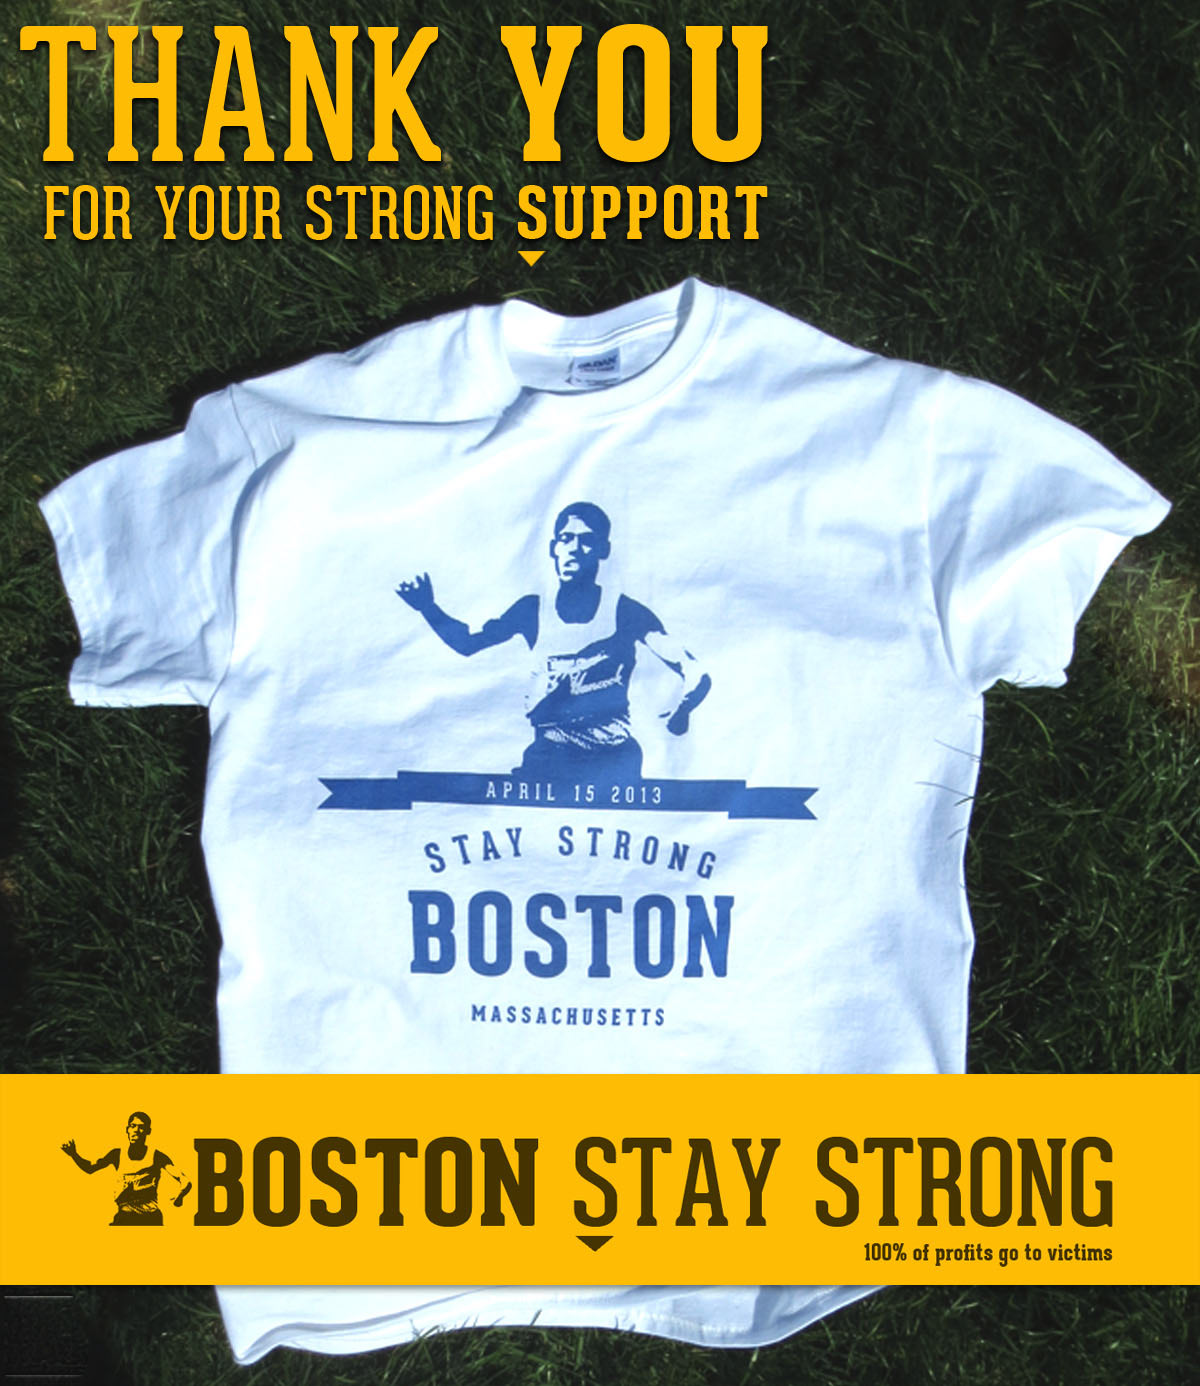 Boston Stay Strong Fund